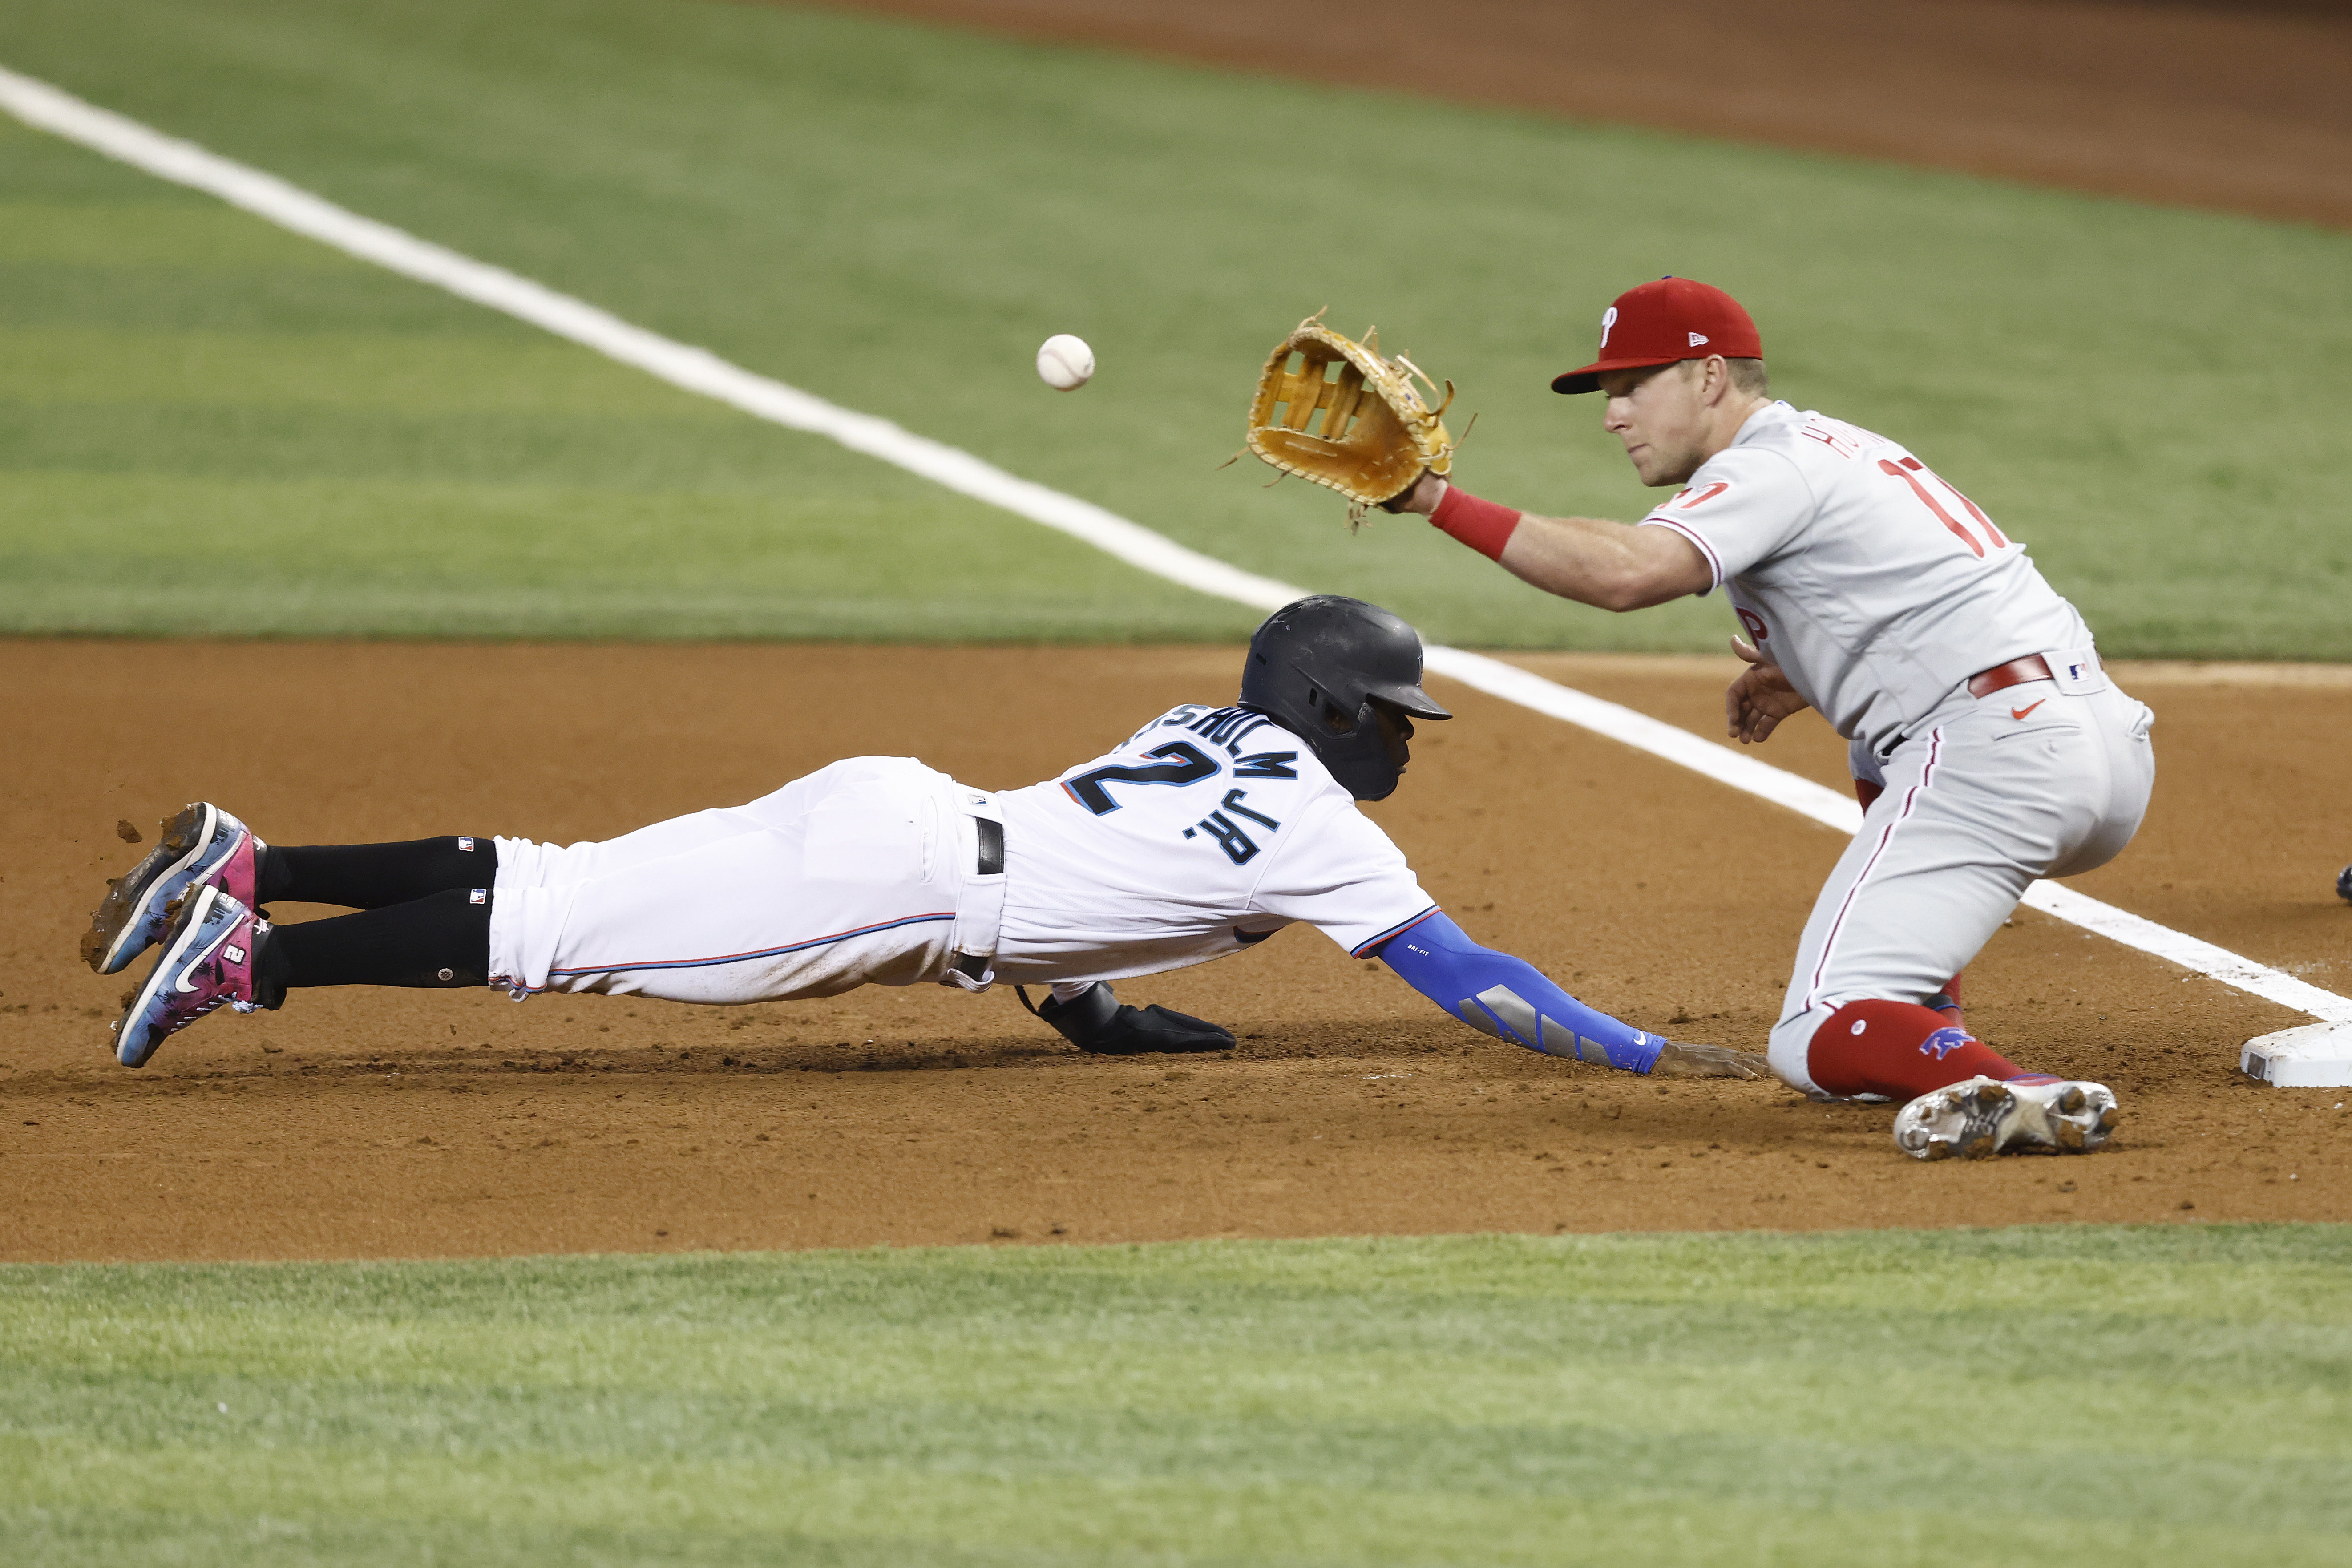 Rhys Hoskins #17 of the Philadelphia Phillies catches a pick-off throw as Jazz Chisholm Jr. #2 of the Miami Marlins slides back during the first inning at loanDepot park